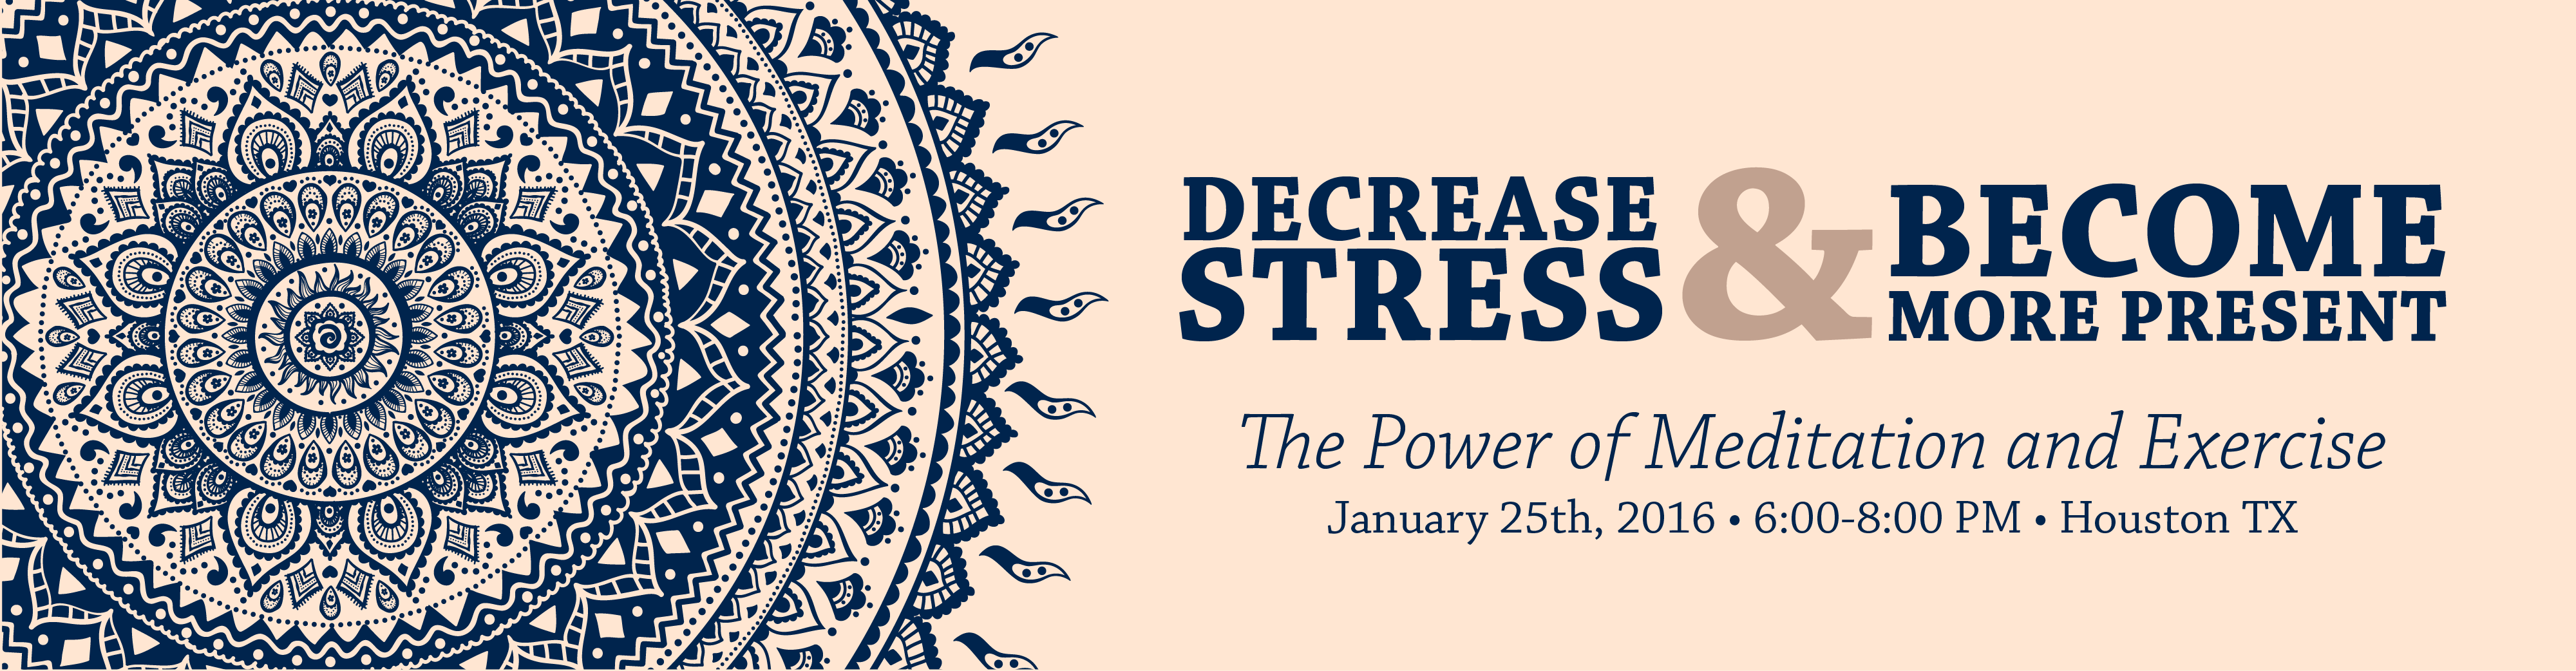 wellness-event-decrease-tress-become-more-present